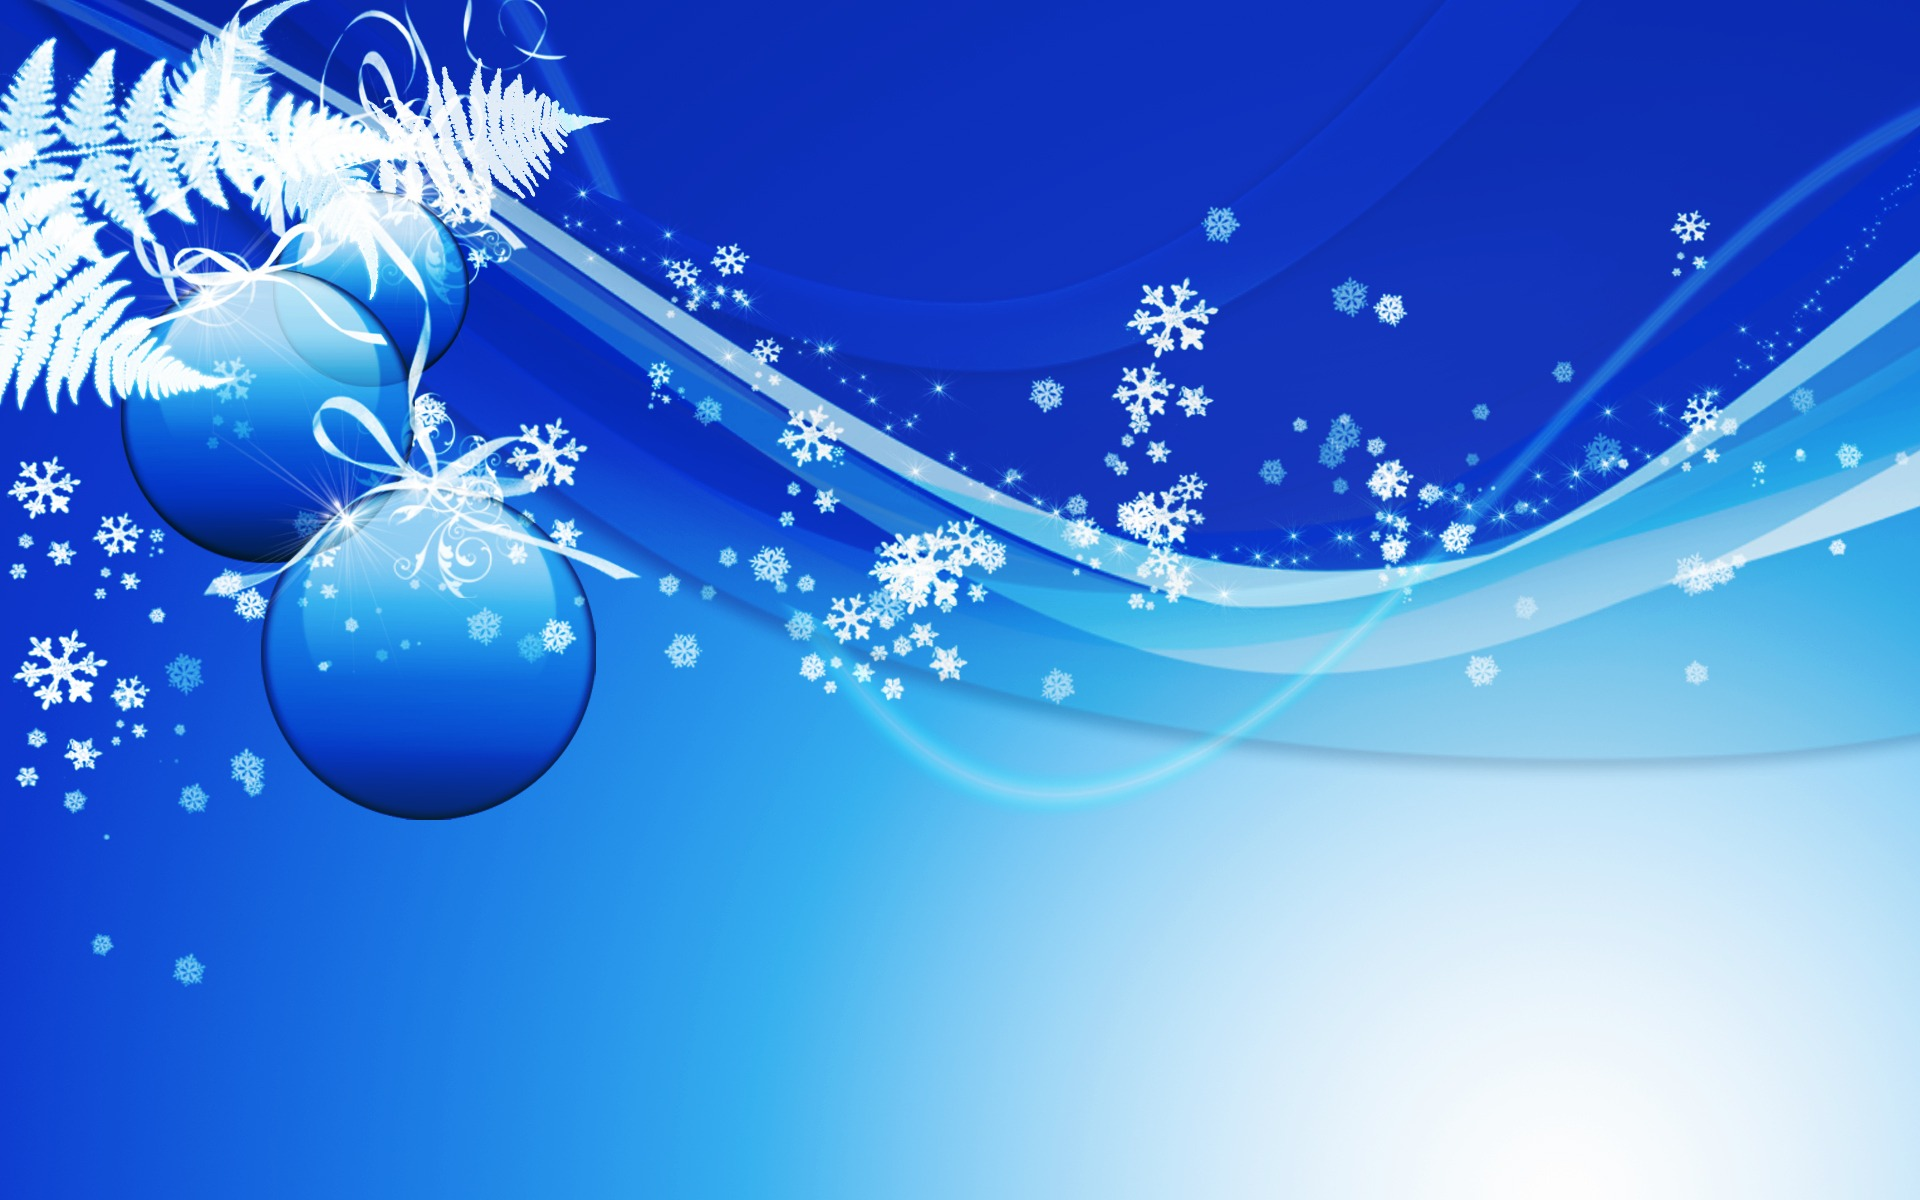 Wallpapers Christmas Wallpapers for Desktop Desktop 1920x1200